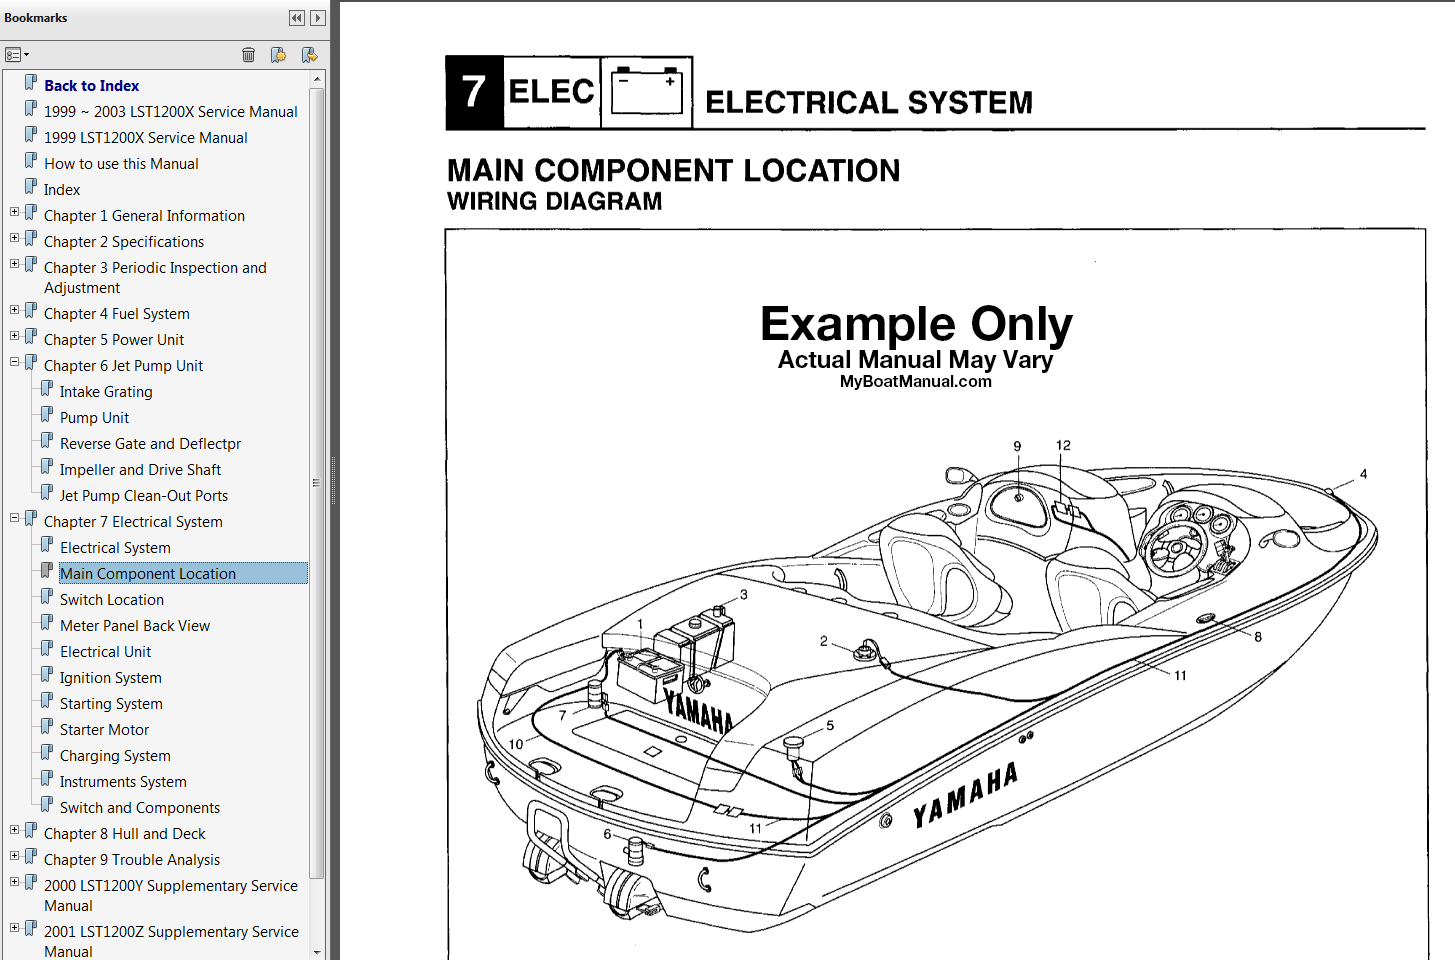 1998 yamaha exciter 270 boat service manual